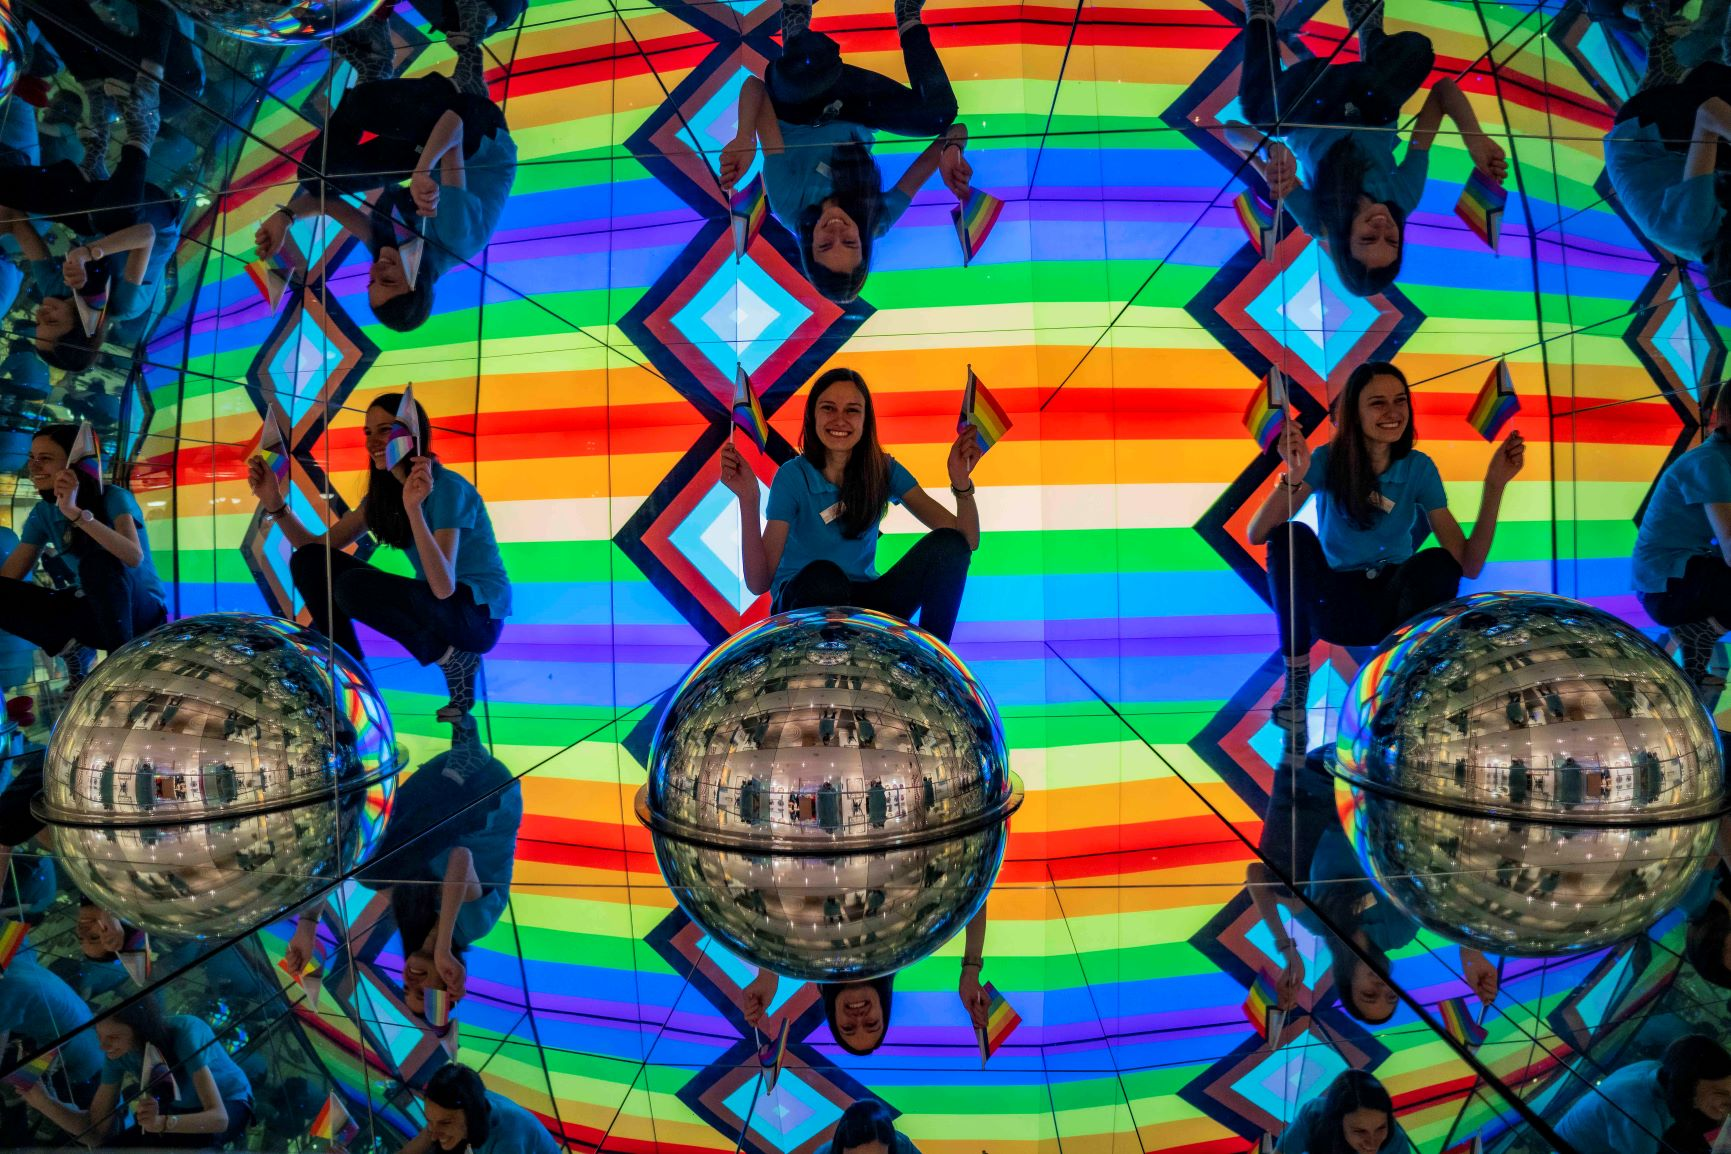 Team member Lisa in the Giant Kaleidosphere surrounded by the Progress Flag